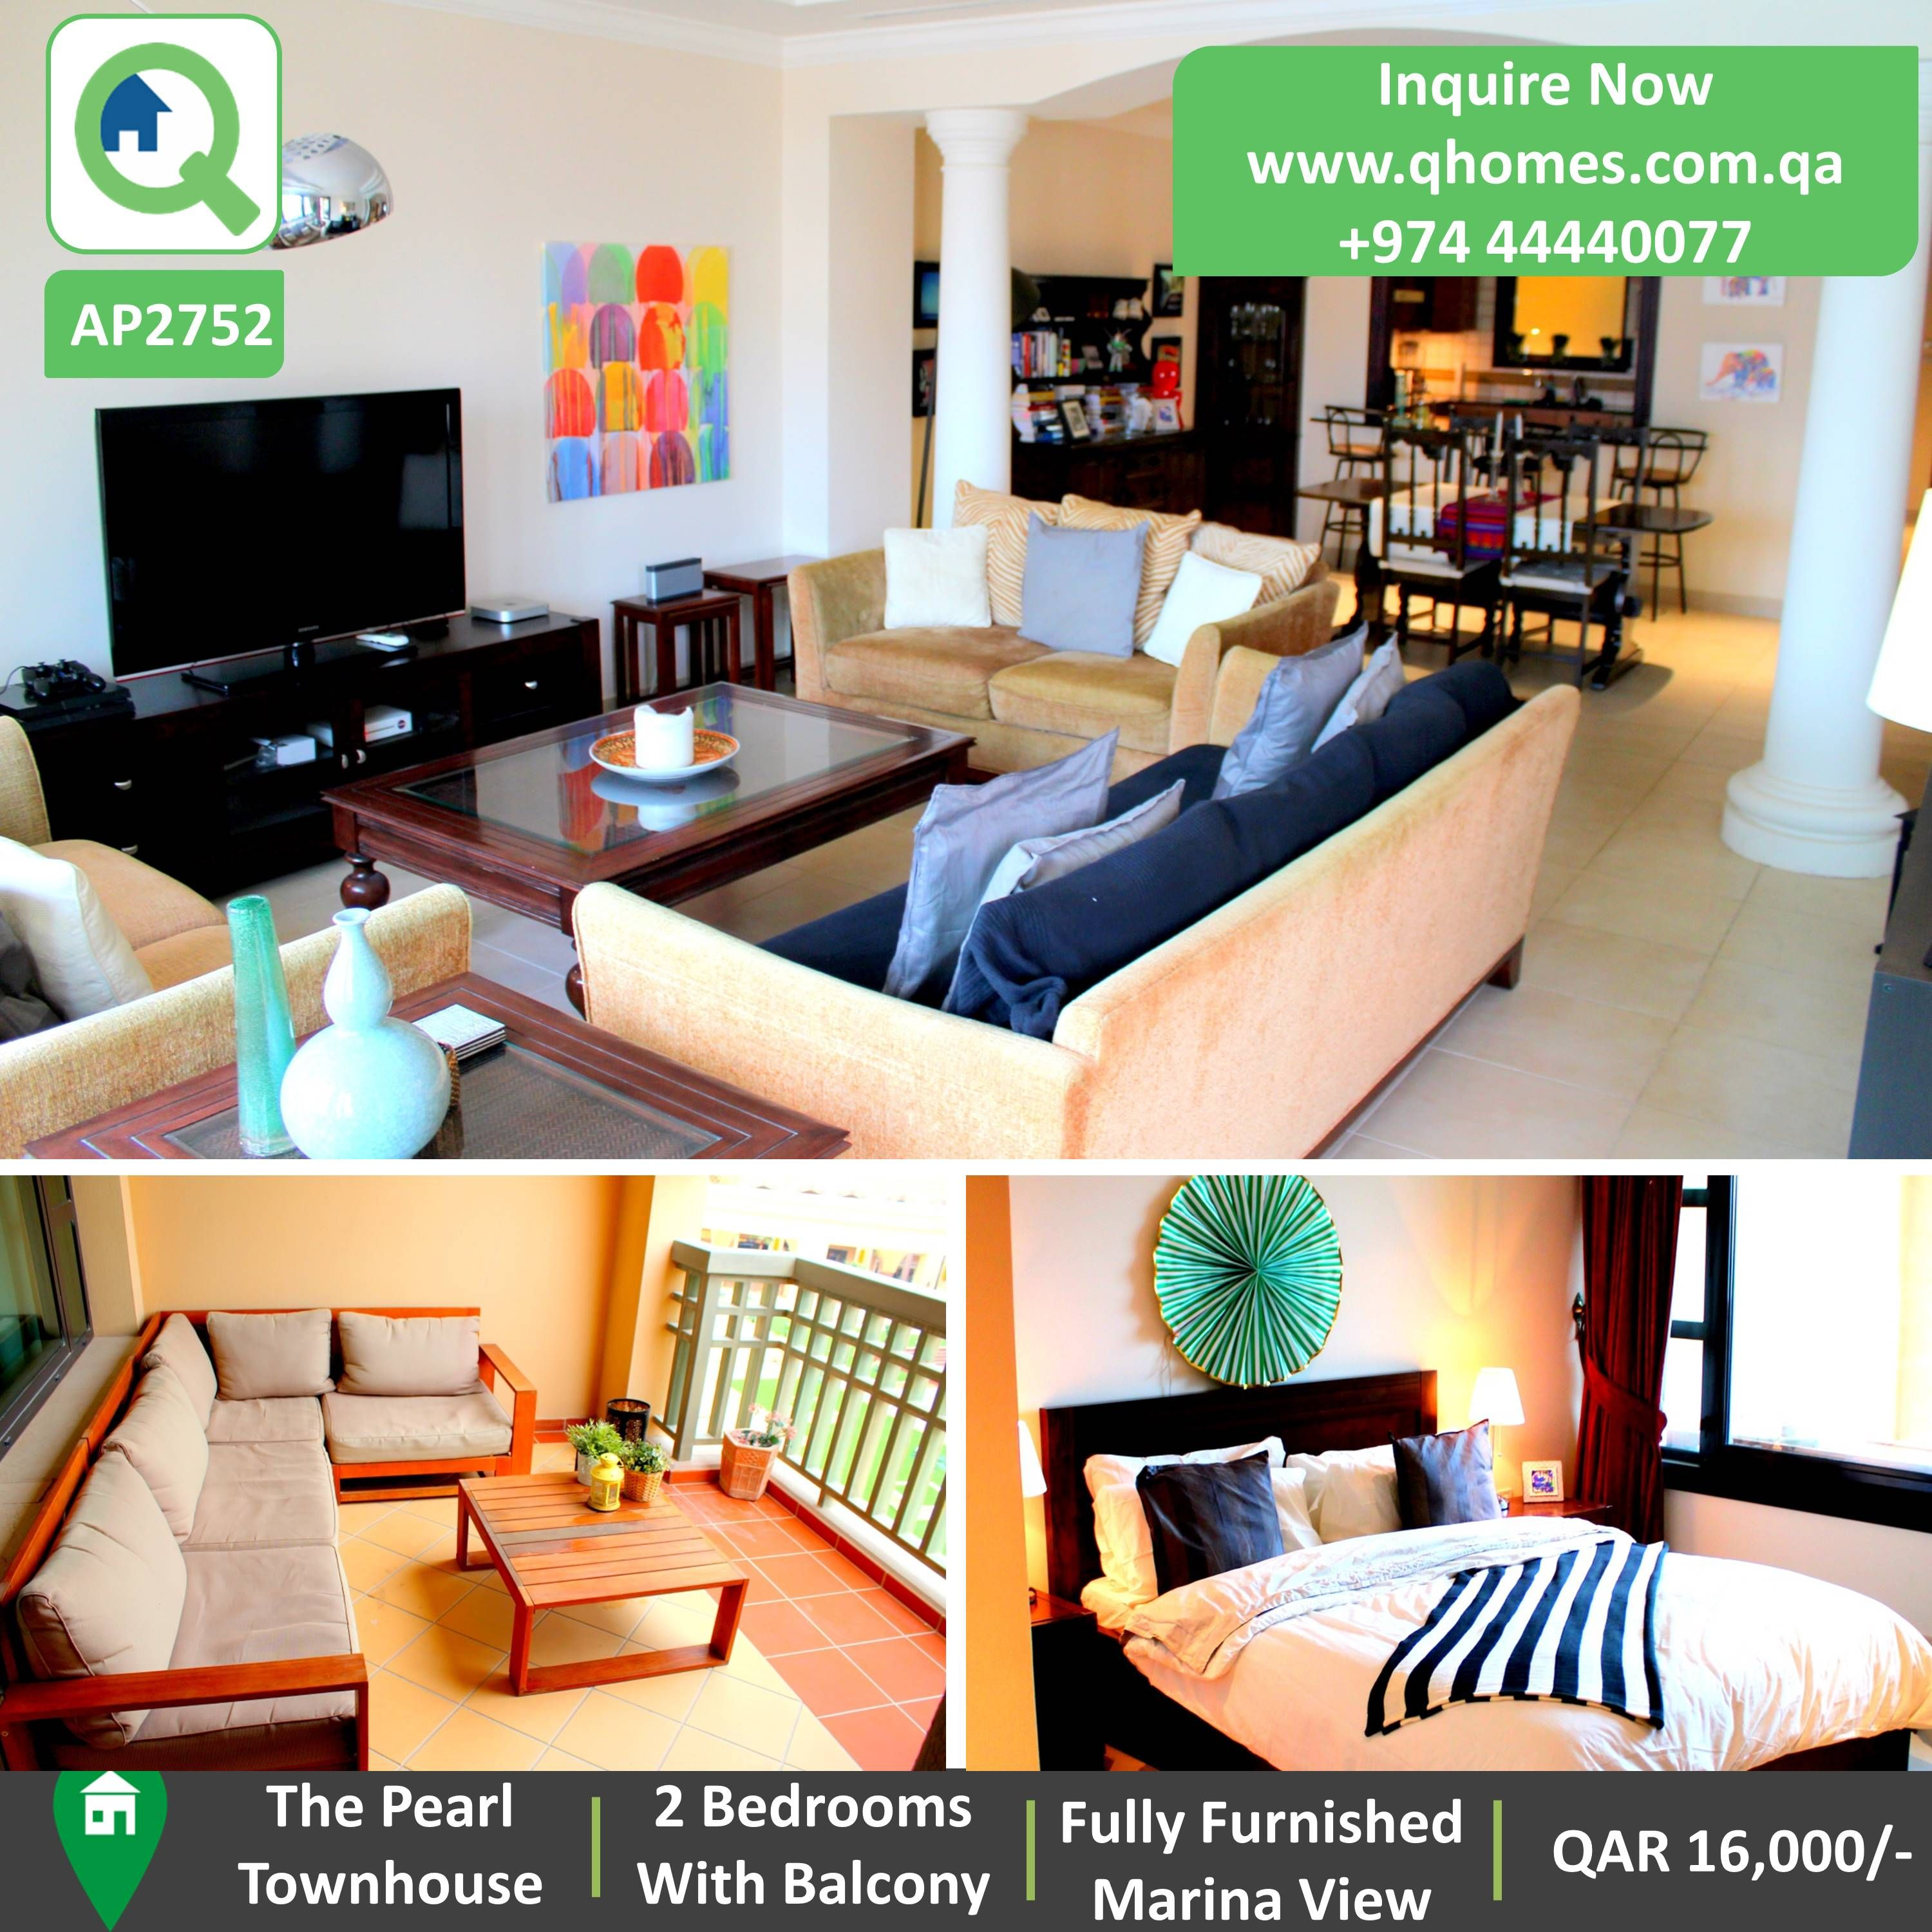 Townhouse For Rent The Pearl: Fully Furnished 2 Bedrooms